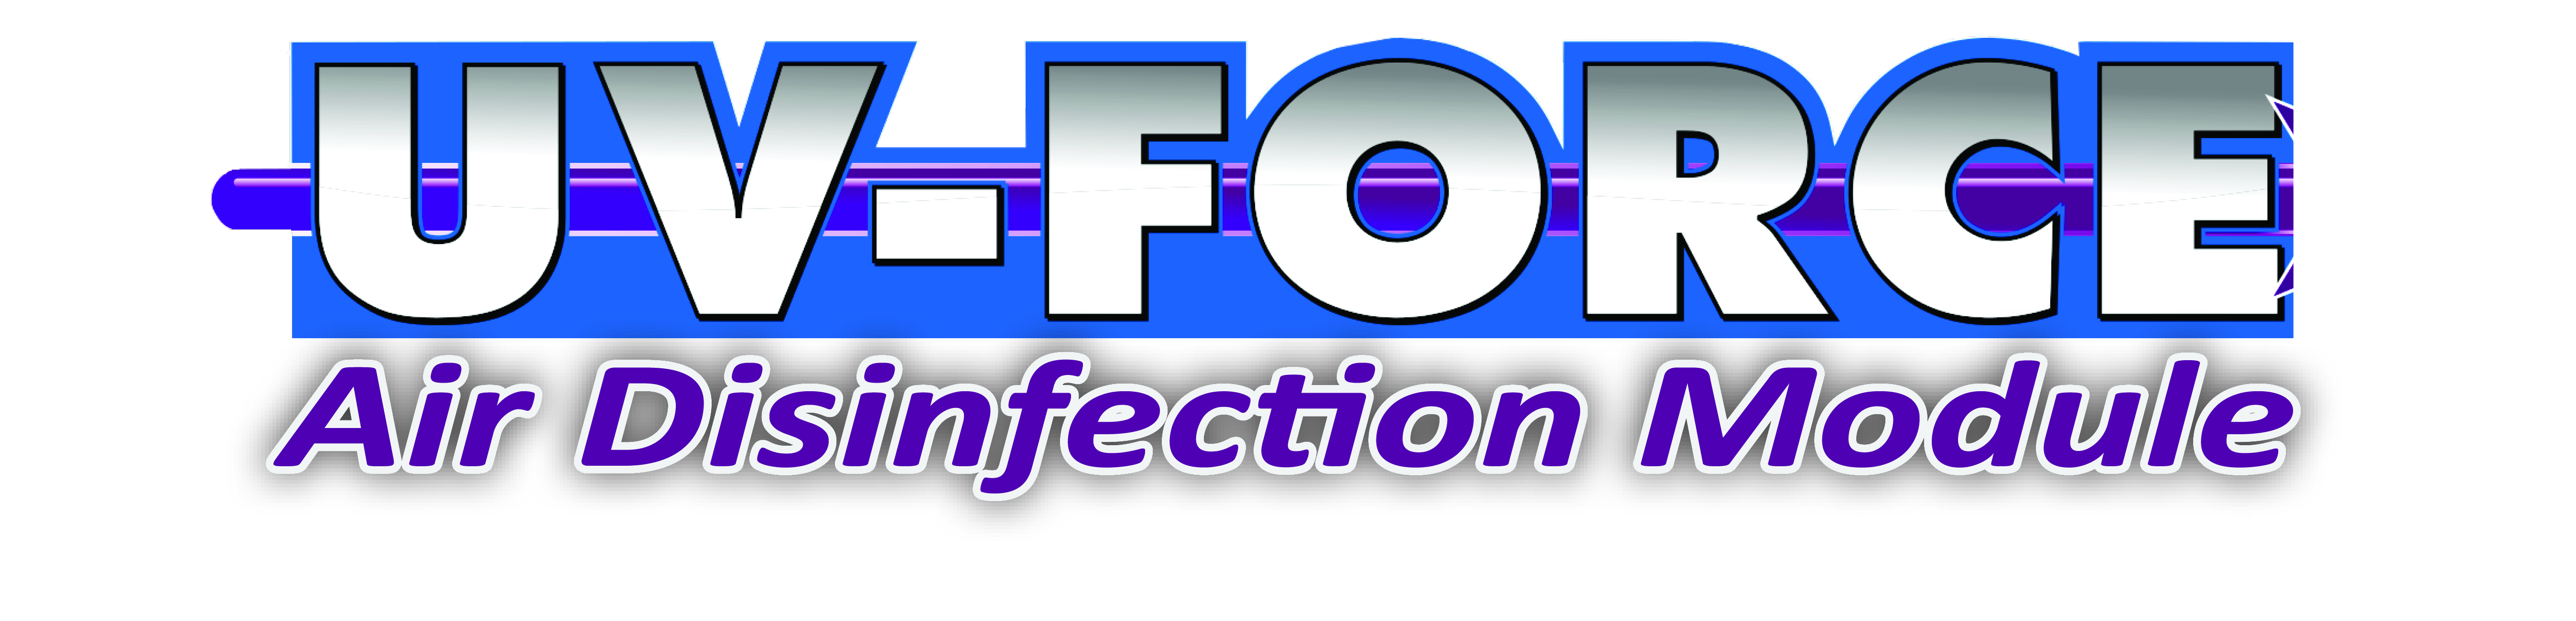 UV-FORCE Air Disinfection Module Log